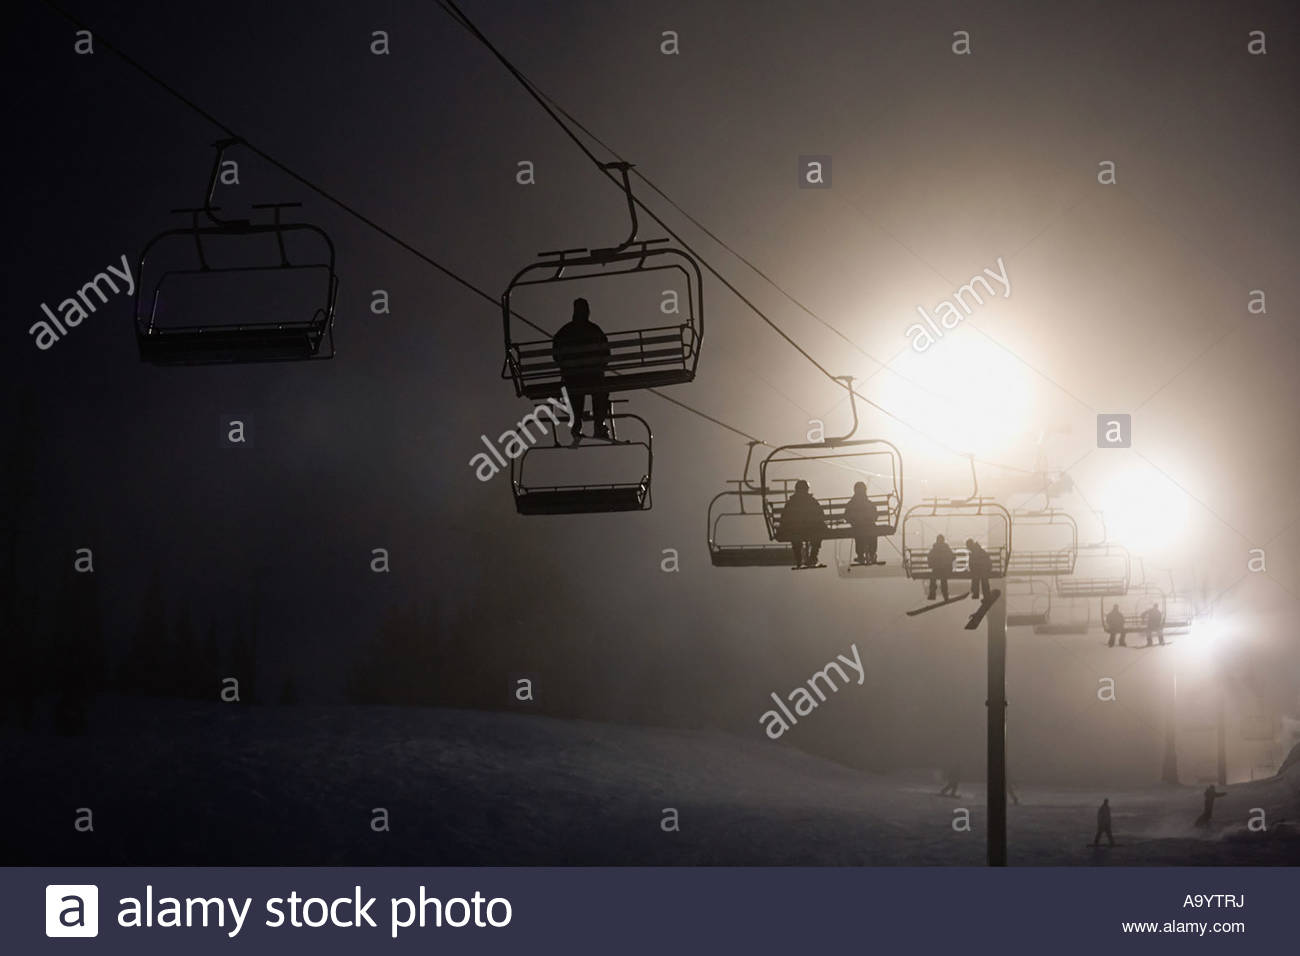 Skiers on a ski lifts - Stock Image